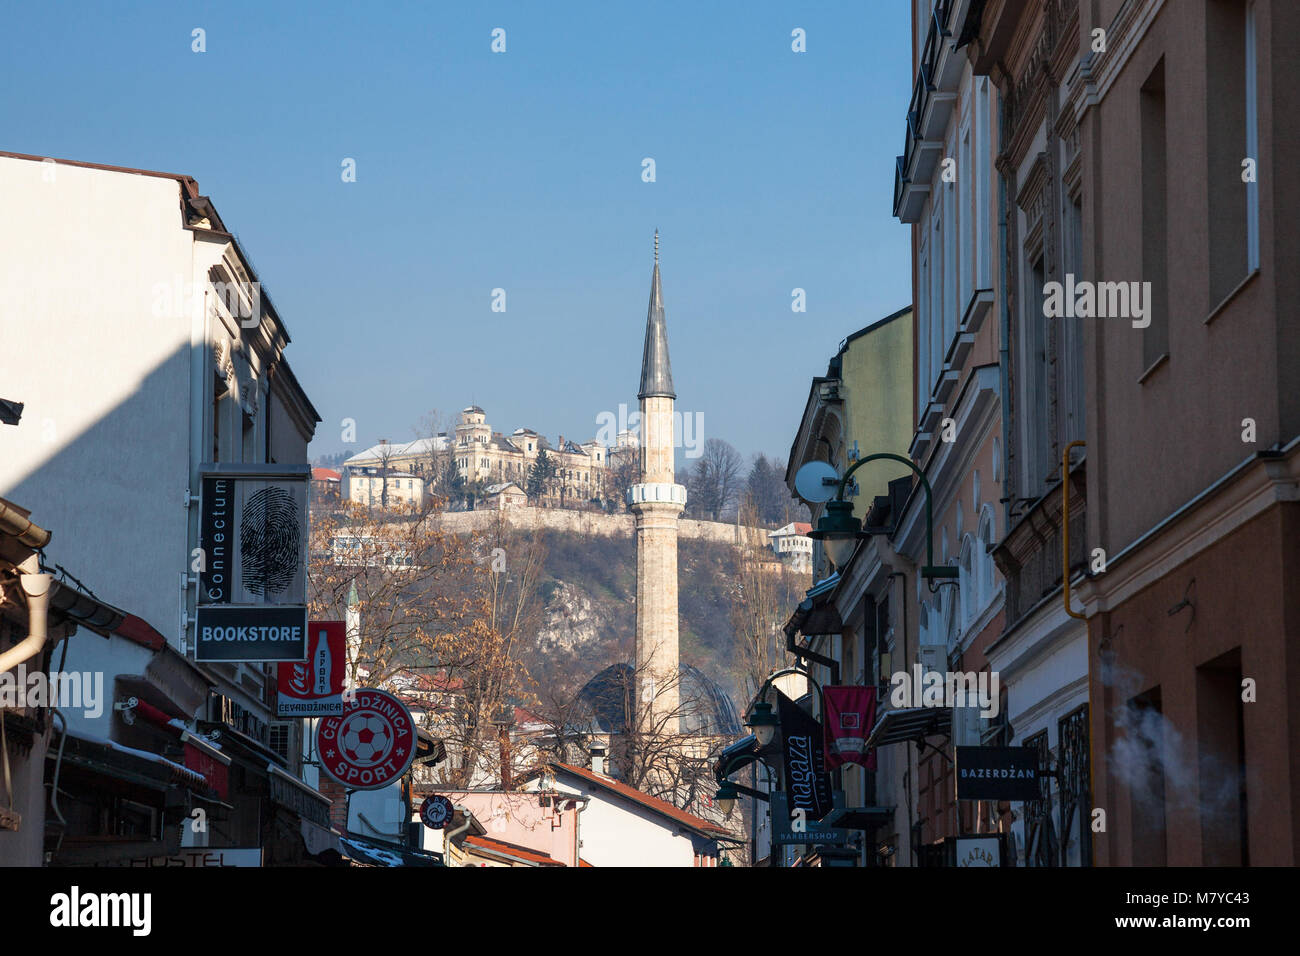 SARAJEVO, BOSNIA AND HERZEGOVINA - FEBRUARY 16, 2018: Mosque Minaret in the Bascarsija district in winter.  Bascarsija - Stock Image